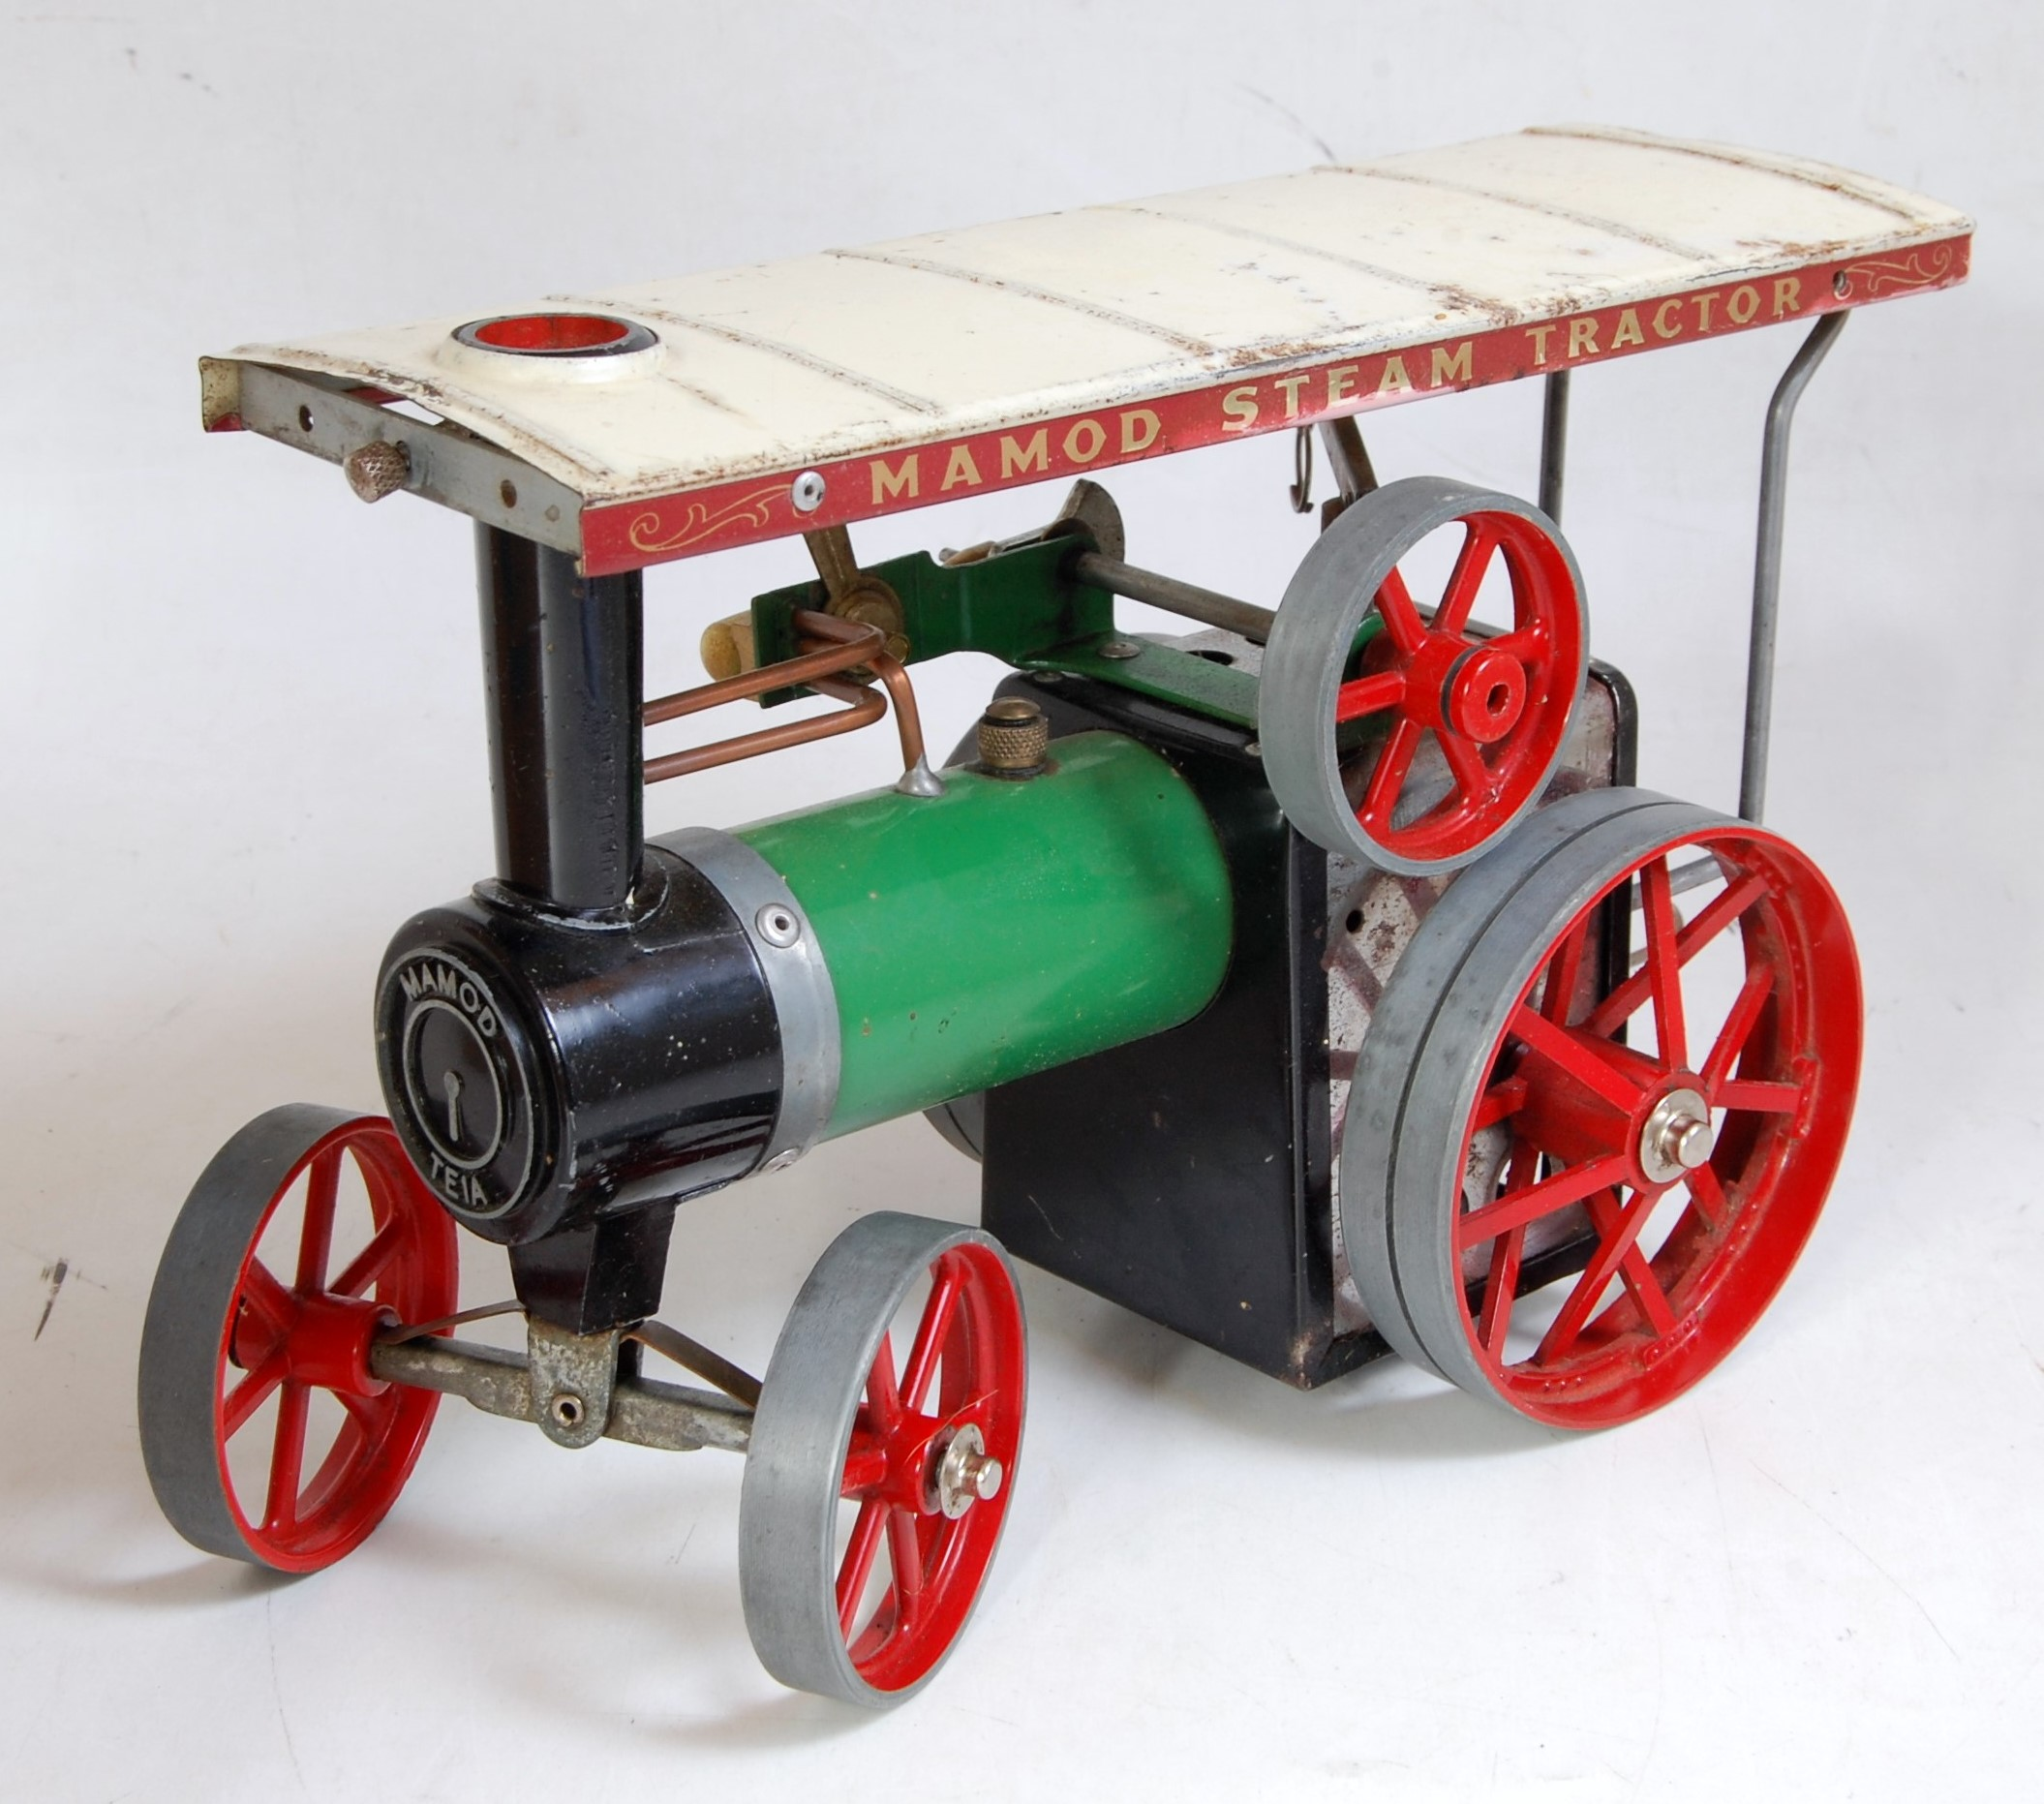 Lot 18 - A Mamod TE1A traction engine of usual specification, with original burner and steering rod (